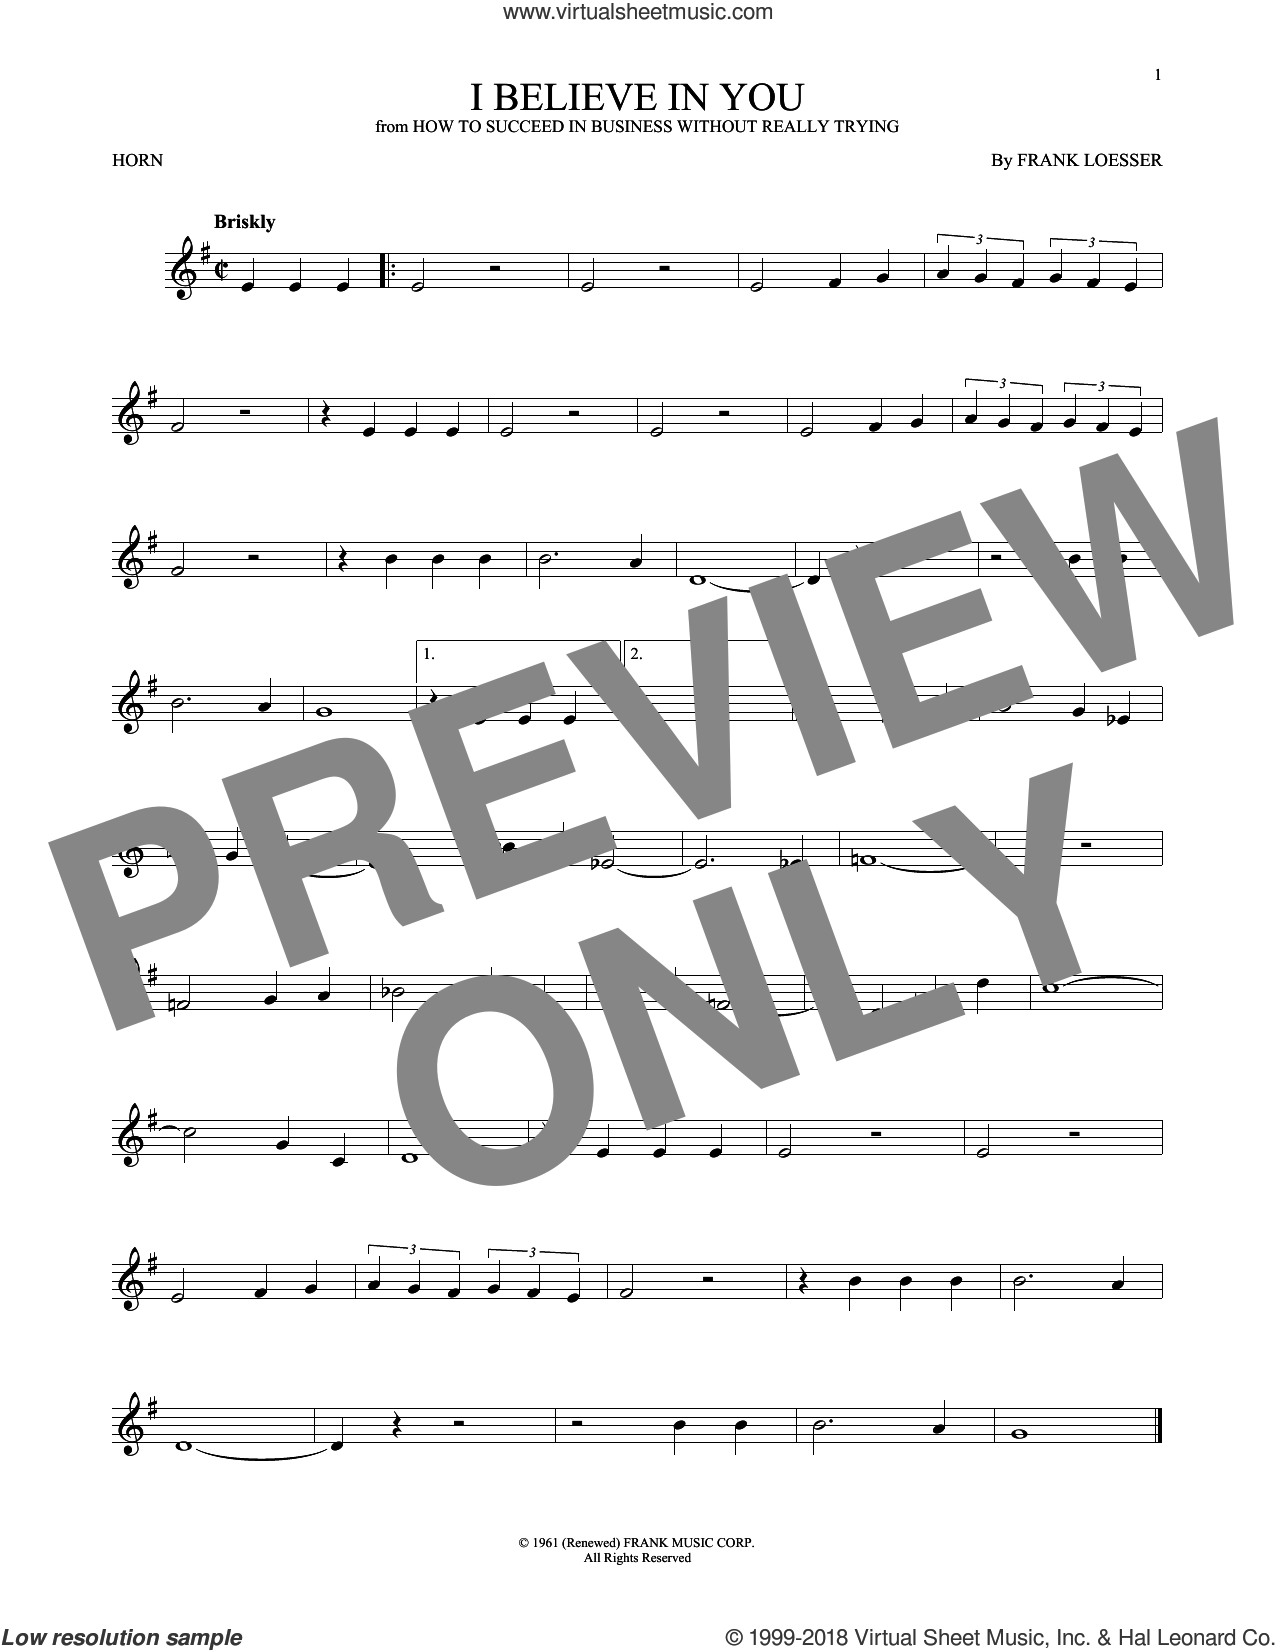 I Believe In You sheet music for horn solo by Frank Loesser, intermediate skill level